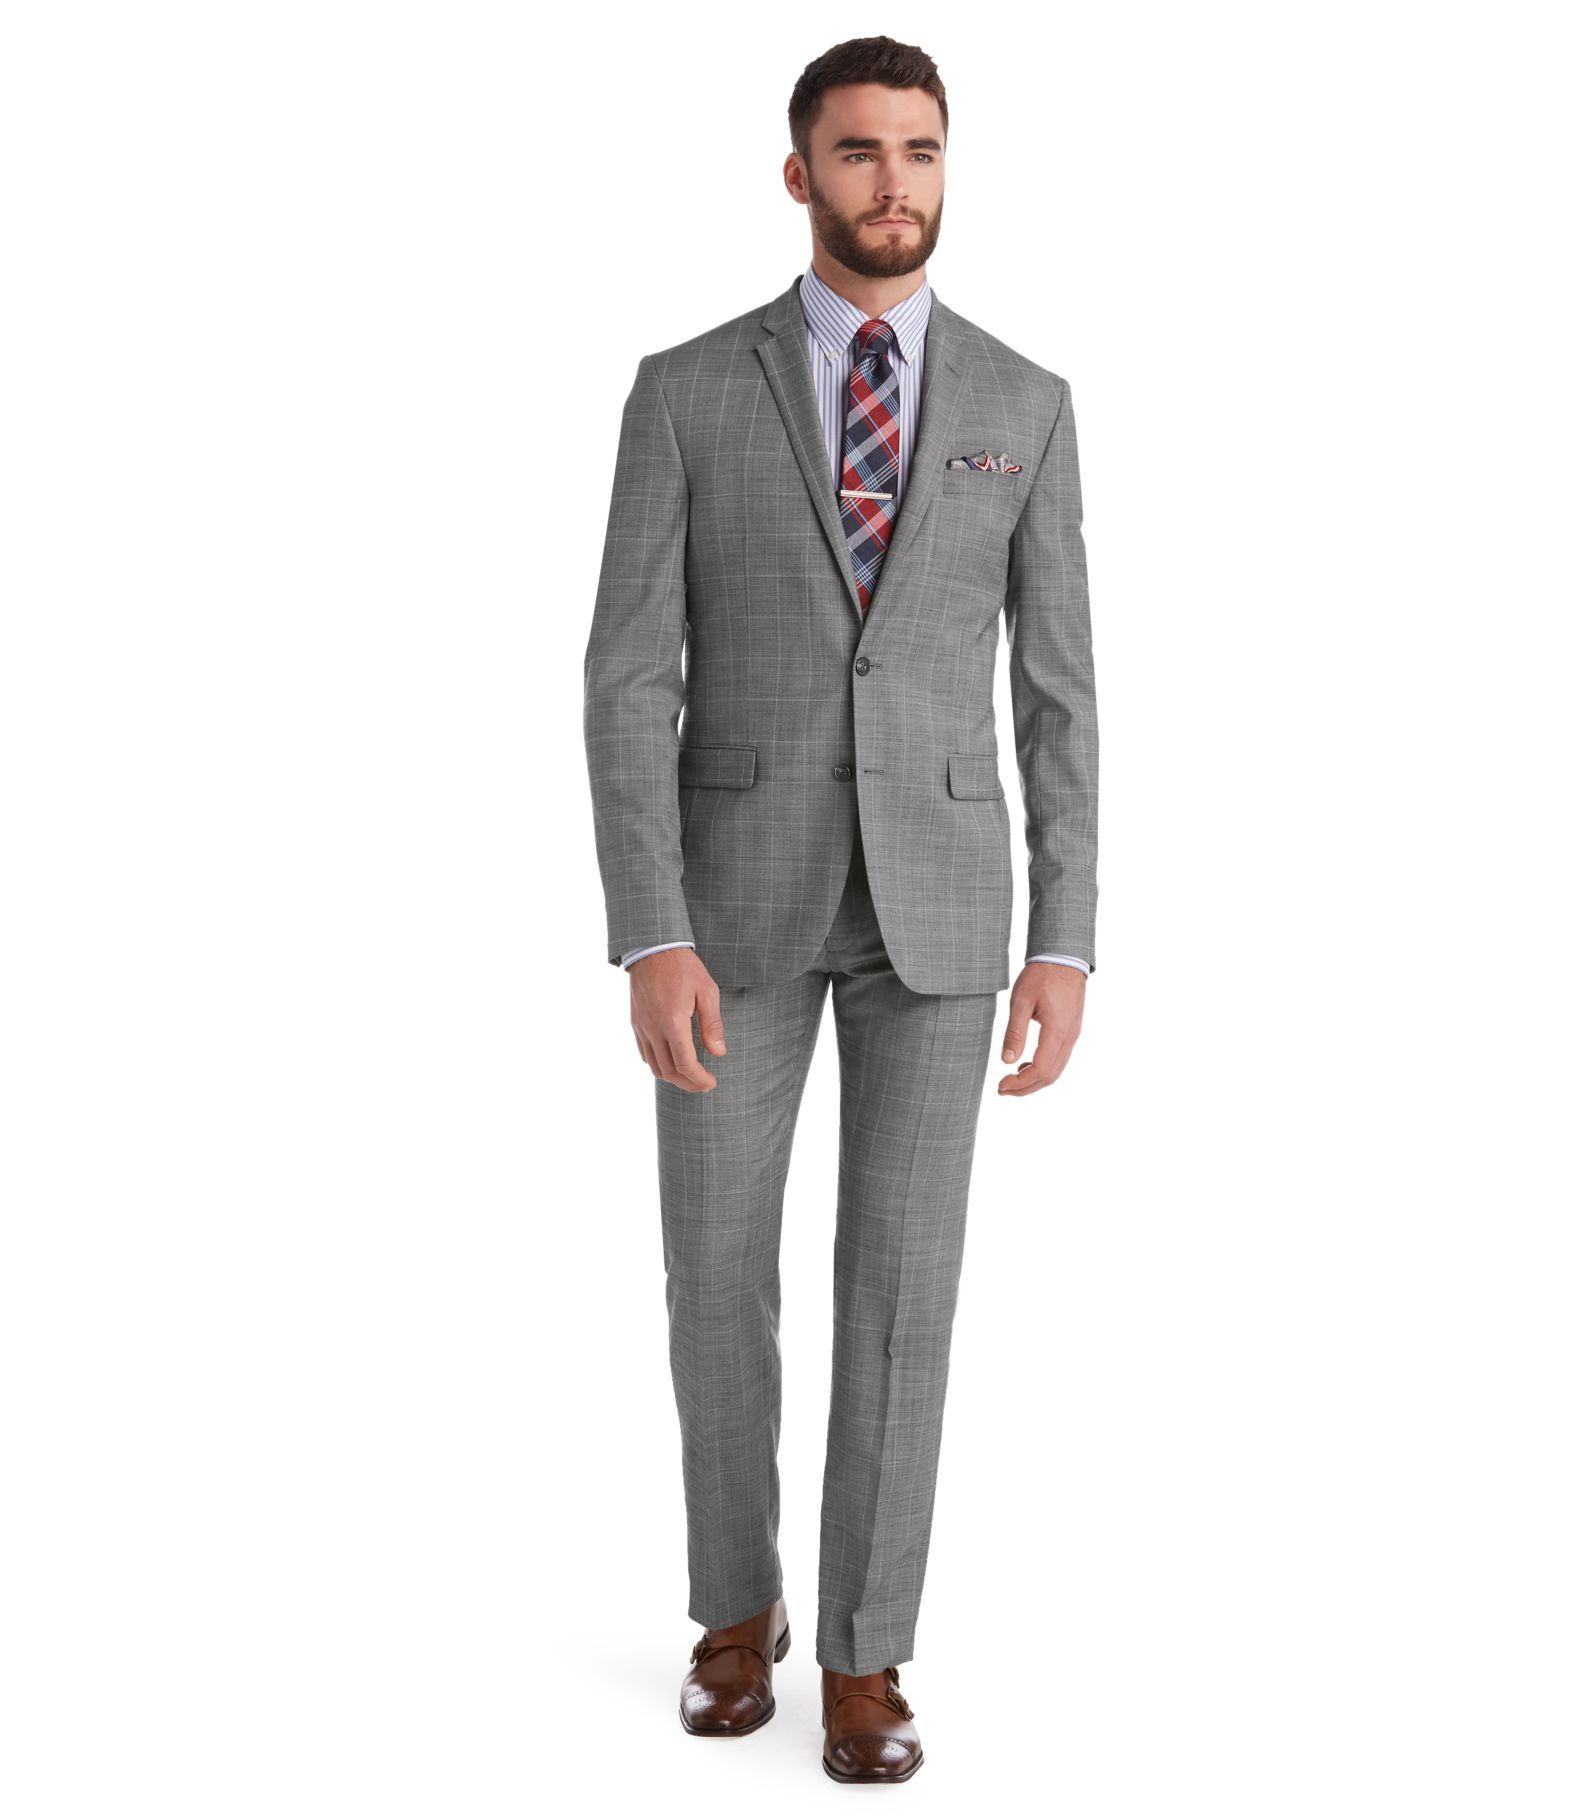 Grey Suit Skinny Dress Yy